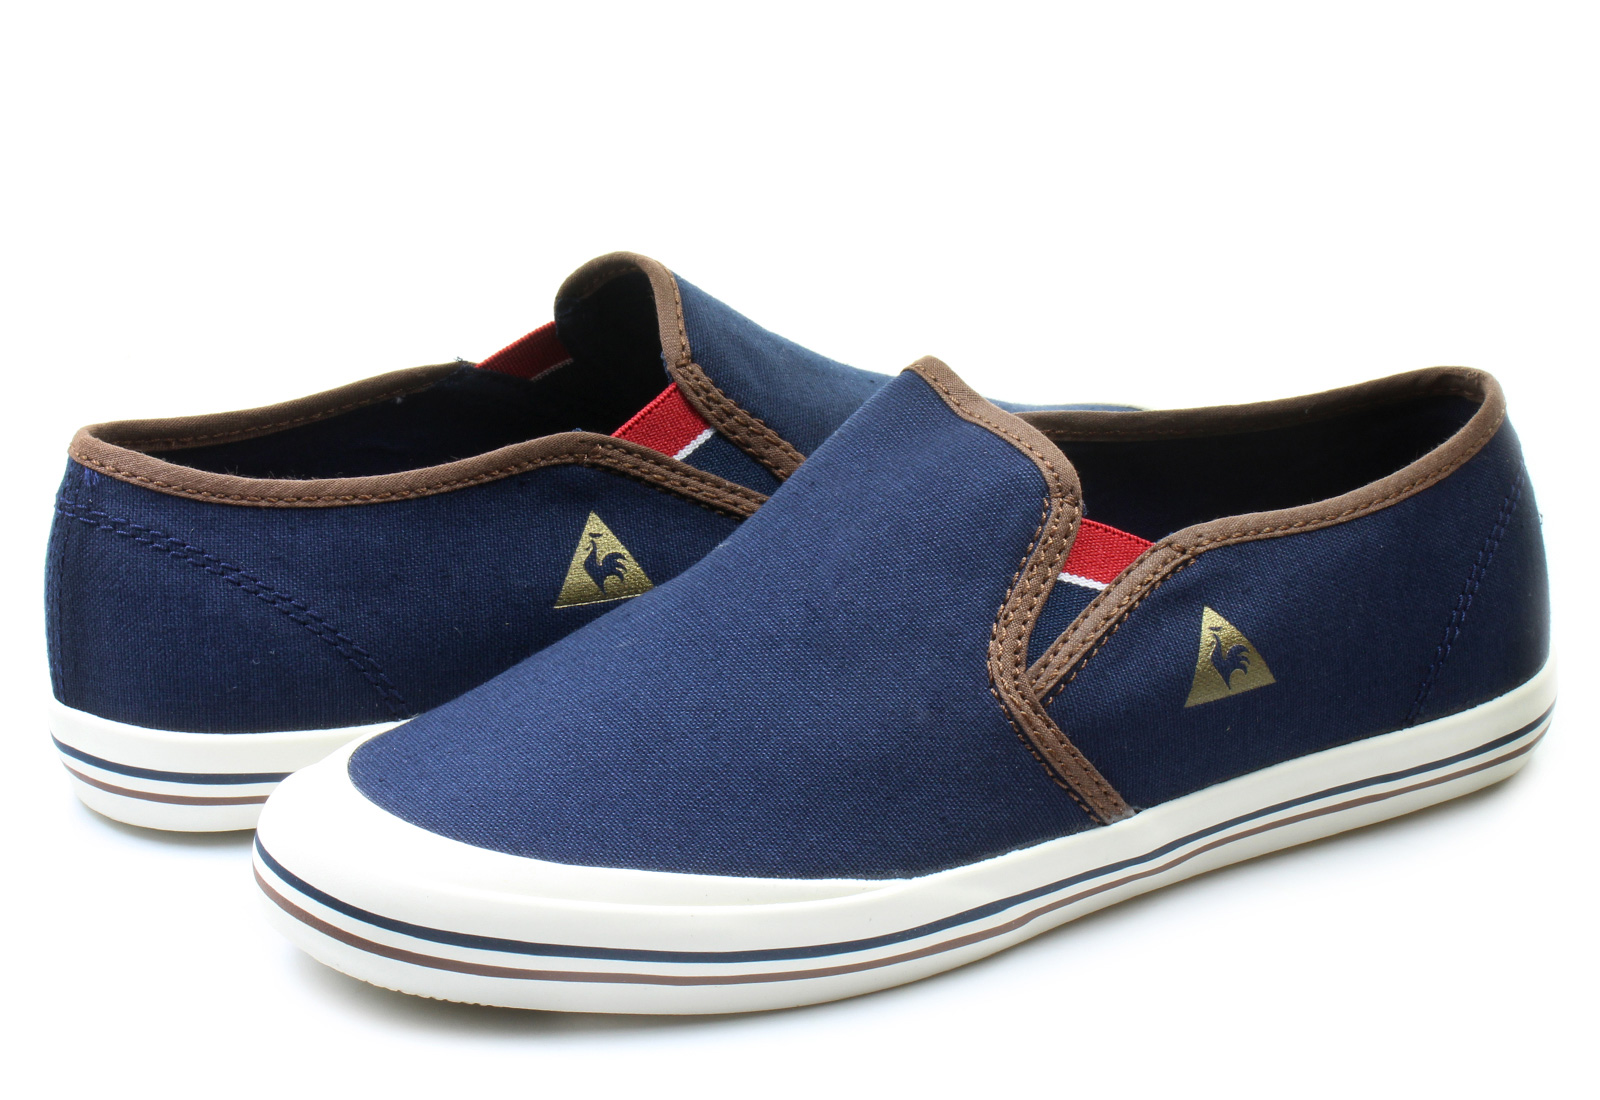 le coq sportif shoes grandville slip on 1510055 online shop for sneakers shoes and boots. Black Bedroom Furniture Sets. Home Design Ideas